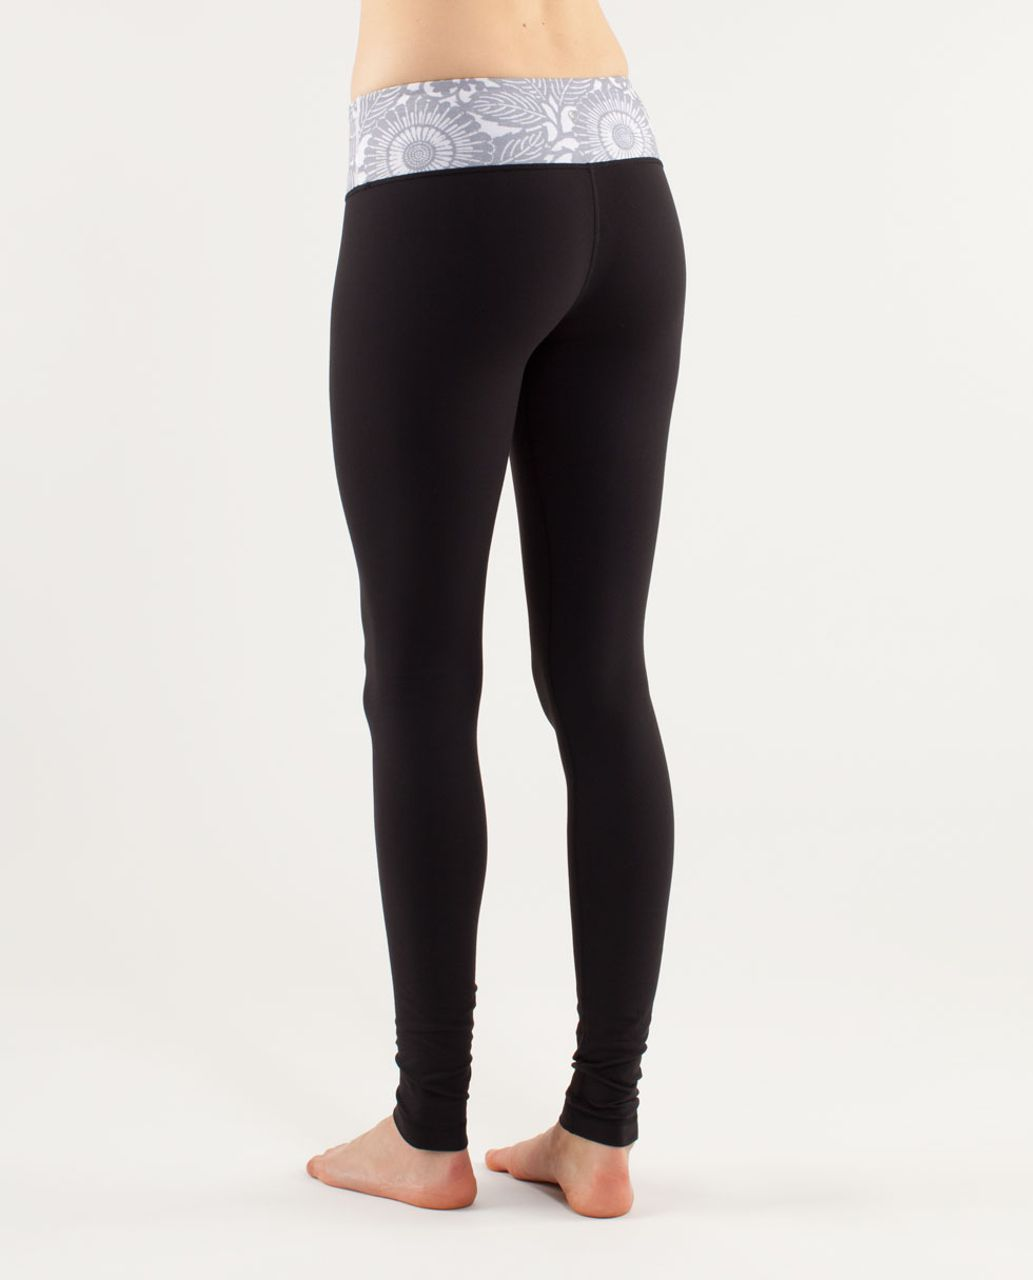 Lululemon Wunder Under Pant - Black /  Beachy Floral White Fossil /  Fossil